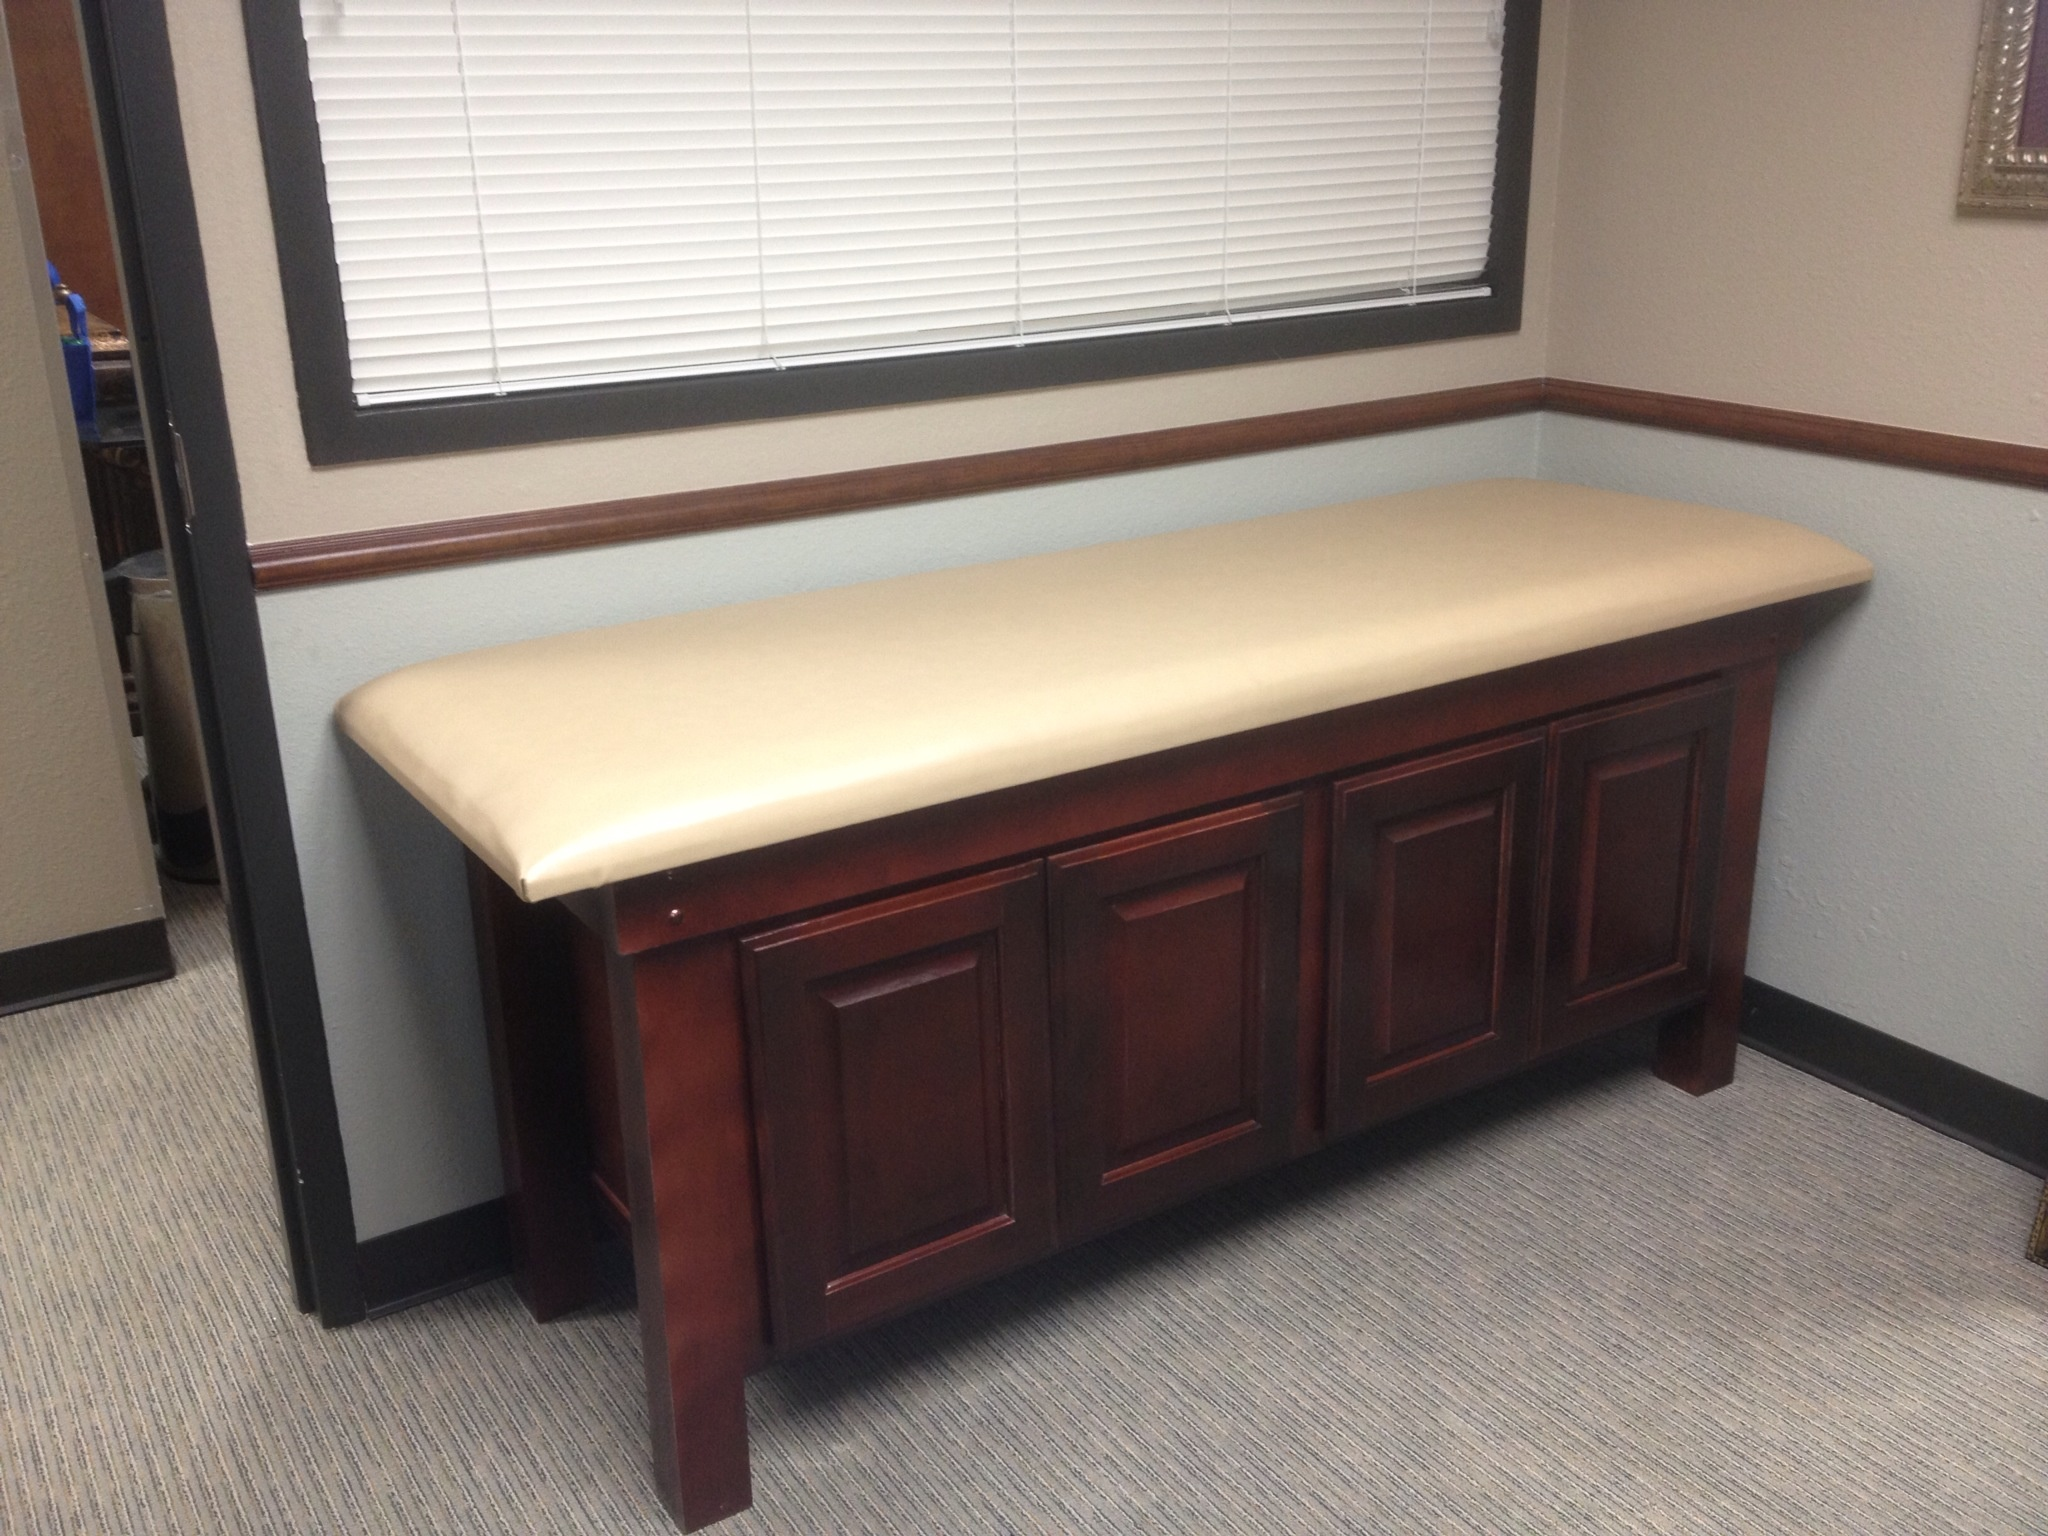 Exam table features 4 raised panel doors.